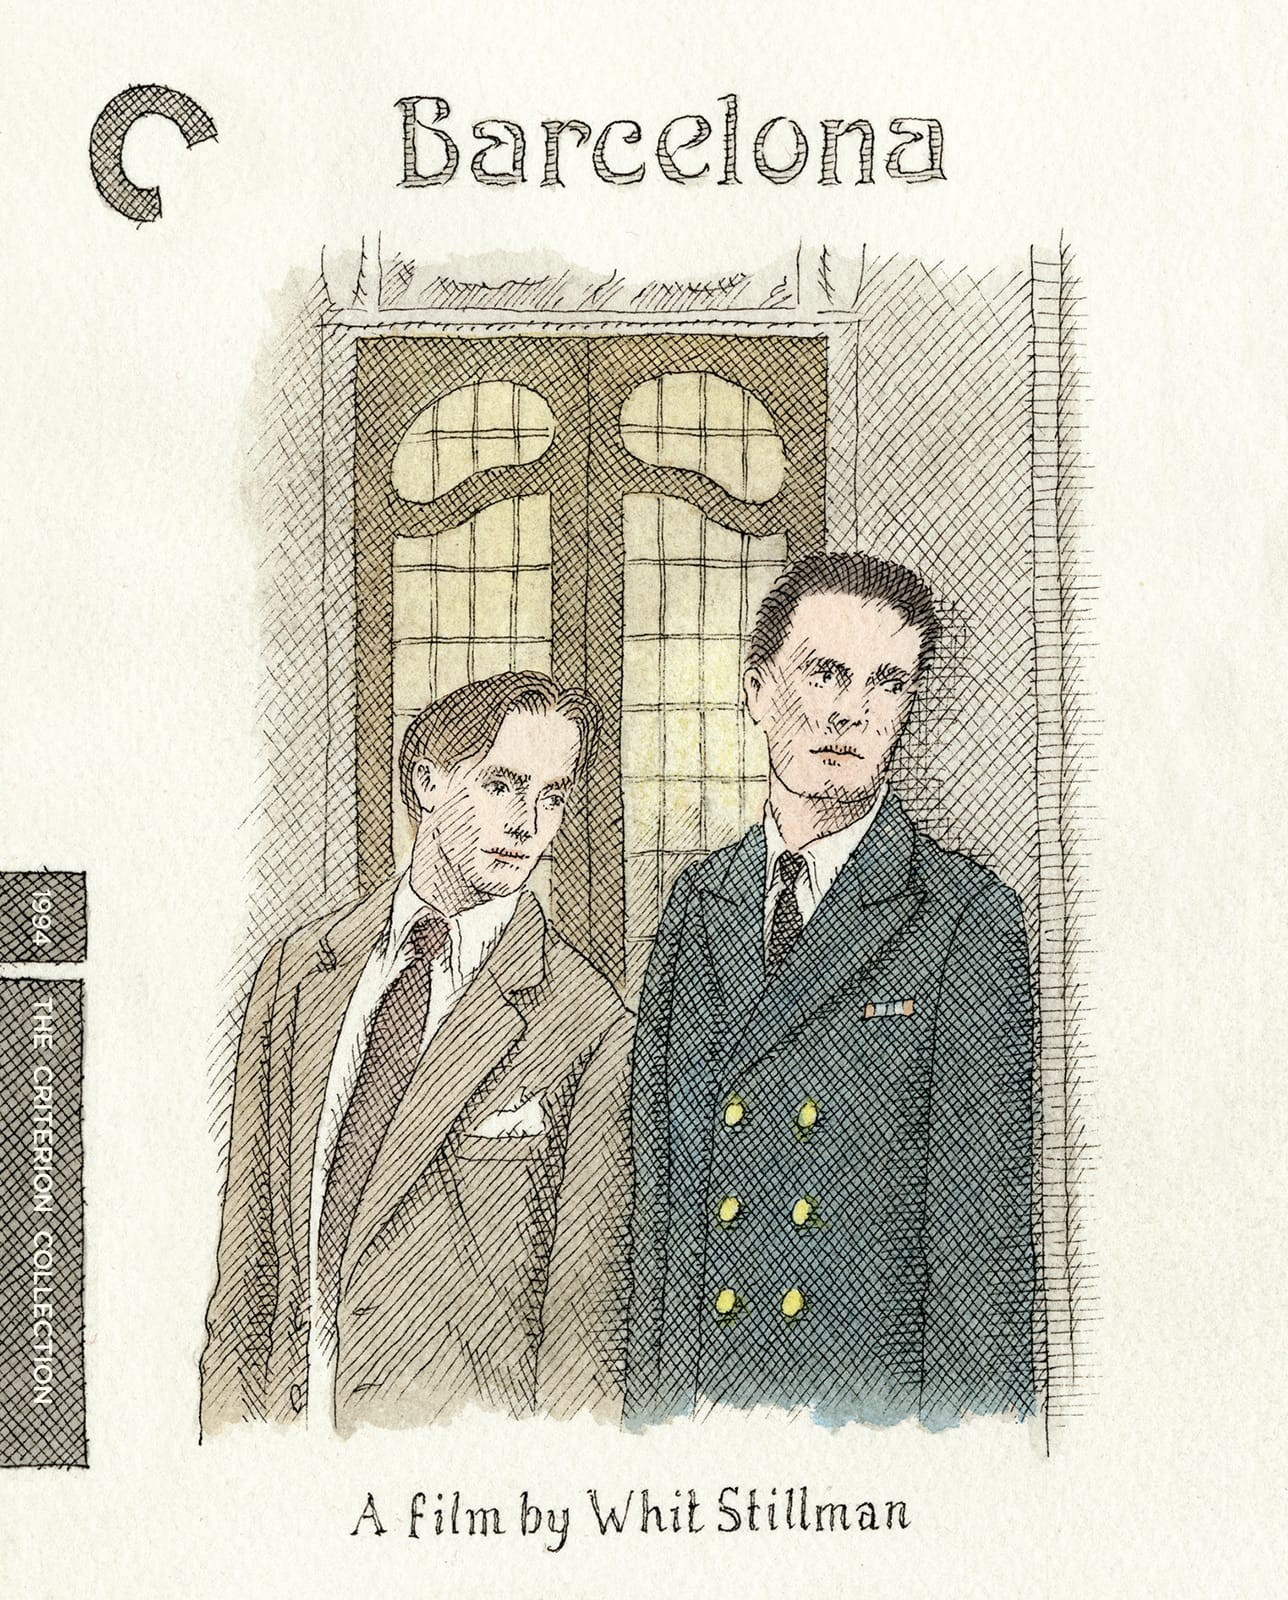 Barcelona (1994) The Criterion Collection Blu-ray